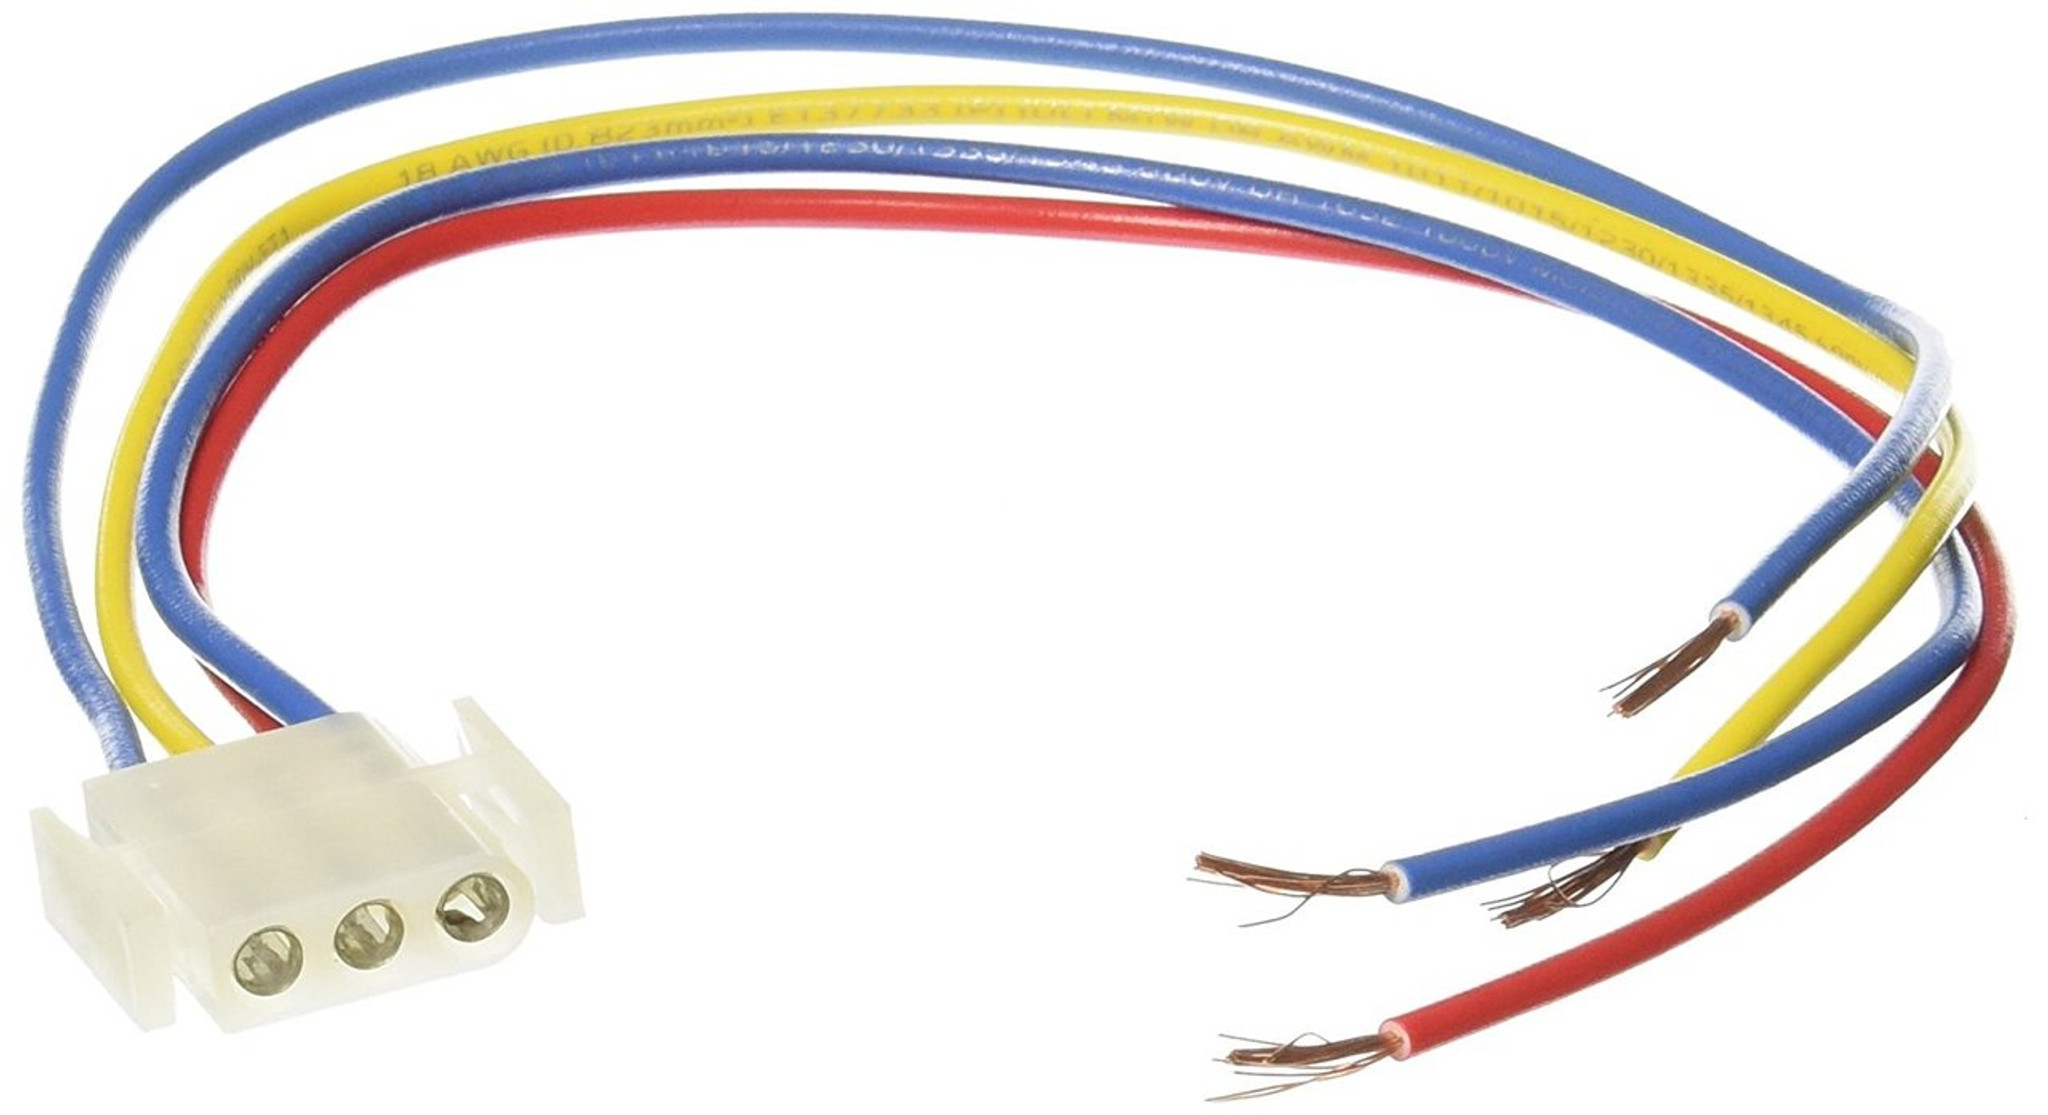 small resolution of suburban furnace power supply wire harness 520322 3 pin female